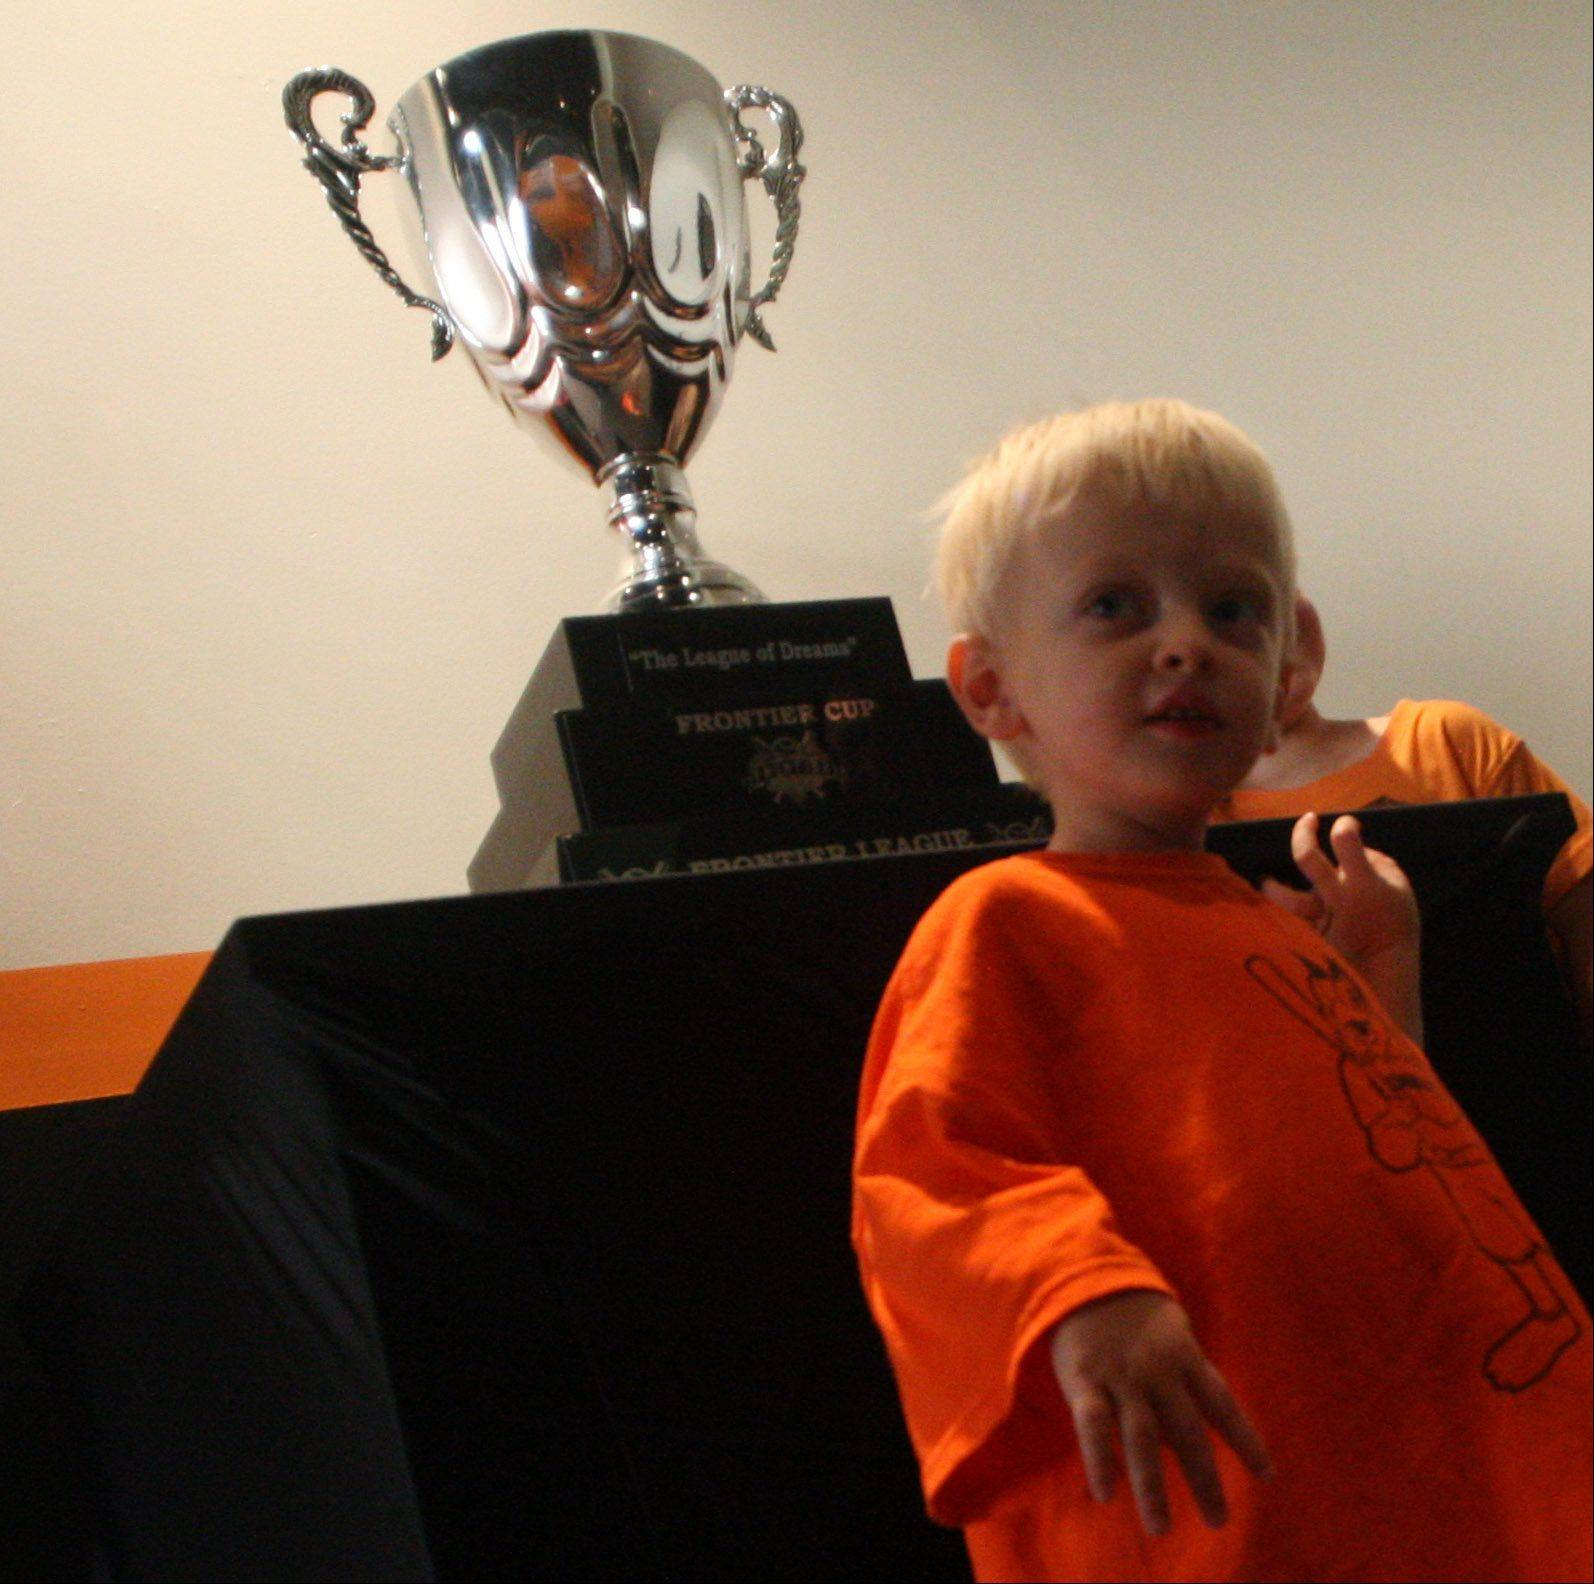 Cooper Matyja, 2, of Hoffman Estates has his picture taken with the Frontier Cup championship trophy as the Boomers arrived home to a reception at Boomers Stadium in Schaumburg on Wednesday.